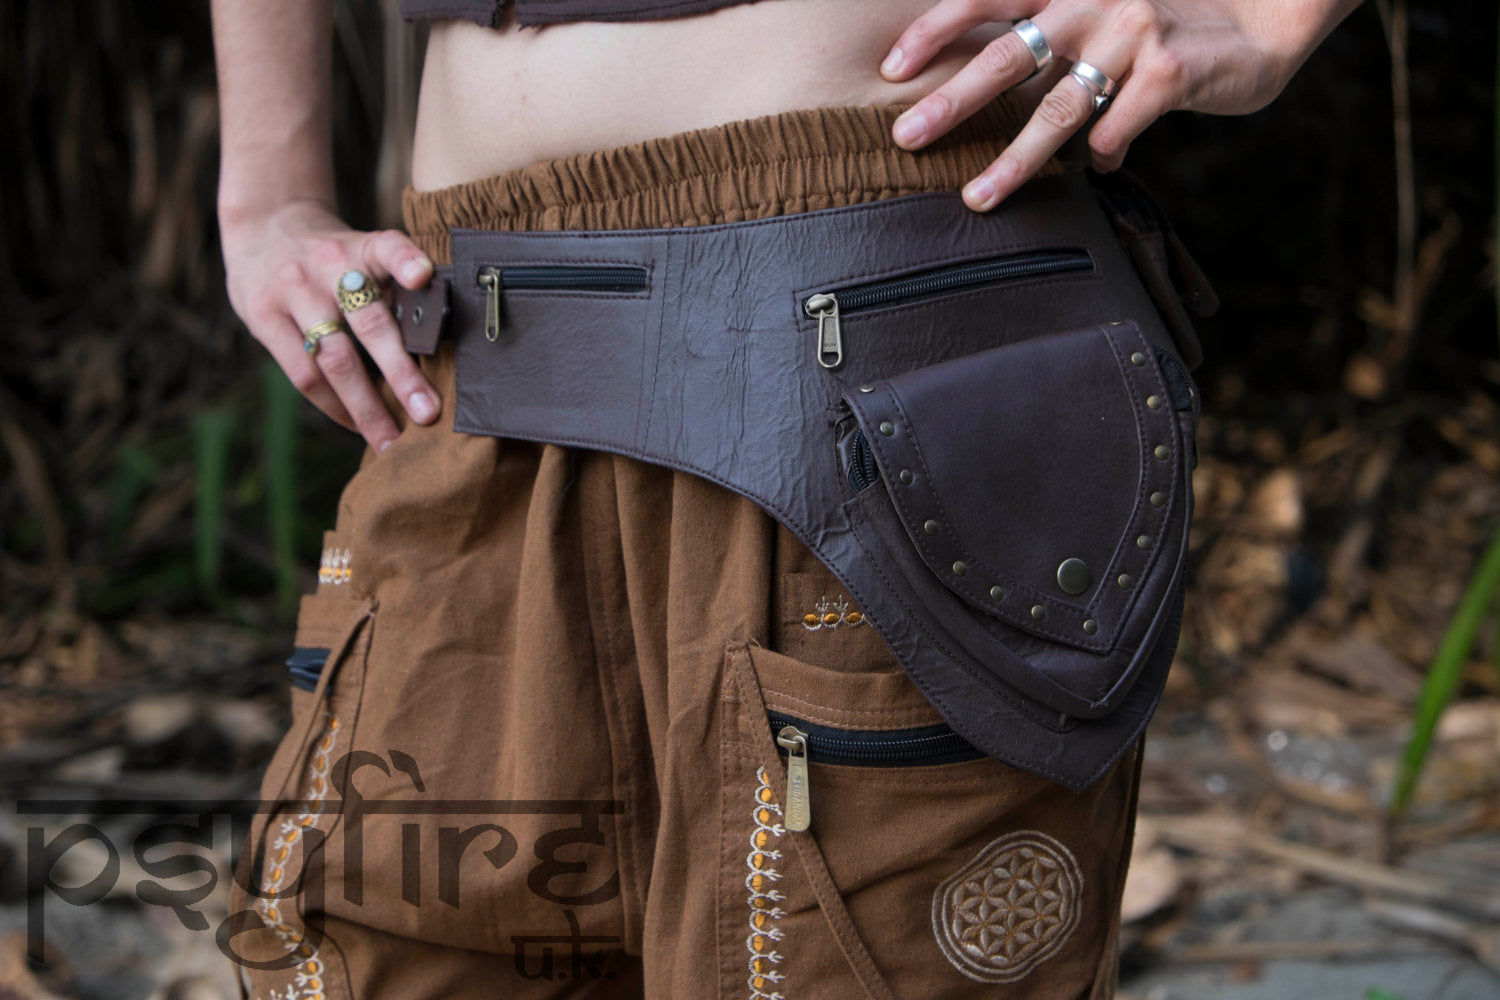 BROWN LEATHER Utility Belt, Festival Belt, Psytrance, Fanny Pack, Pocket Belt, Hippie Hip Bag